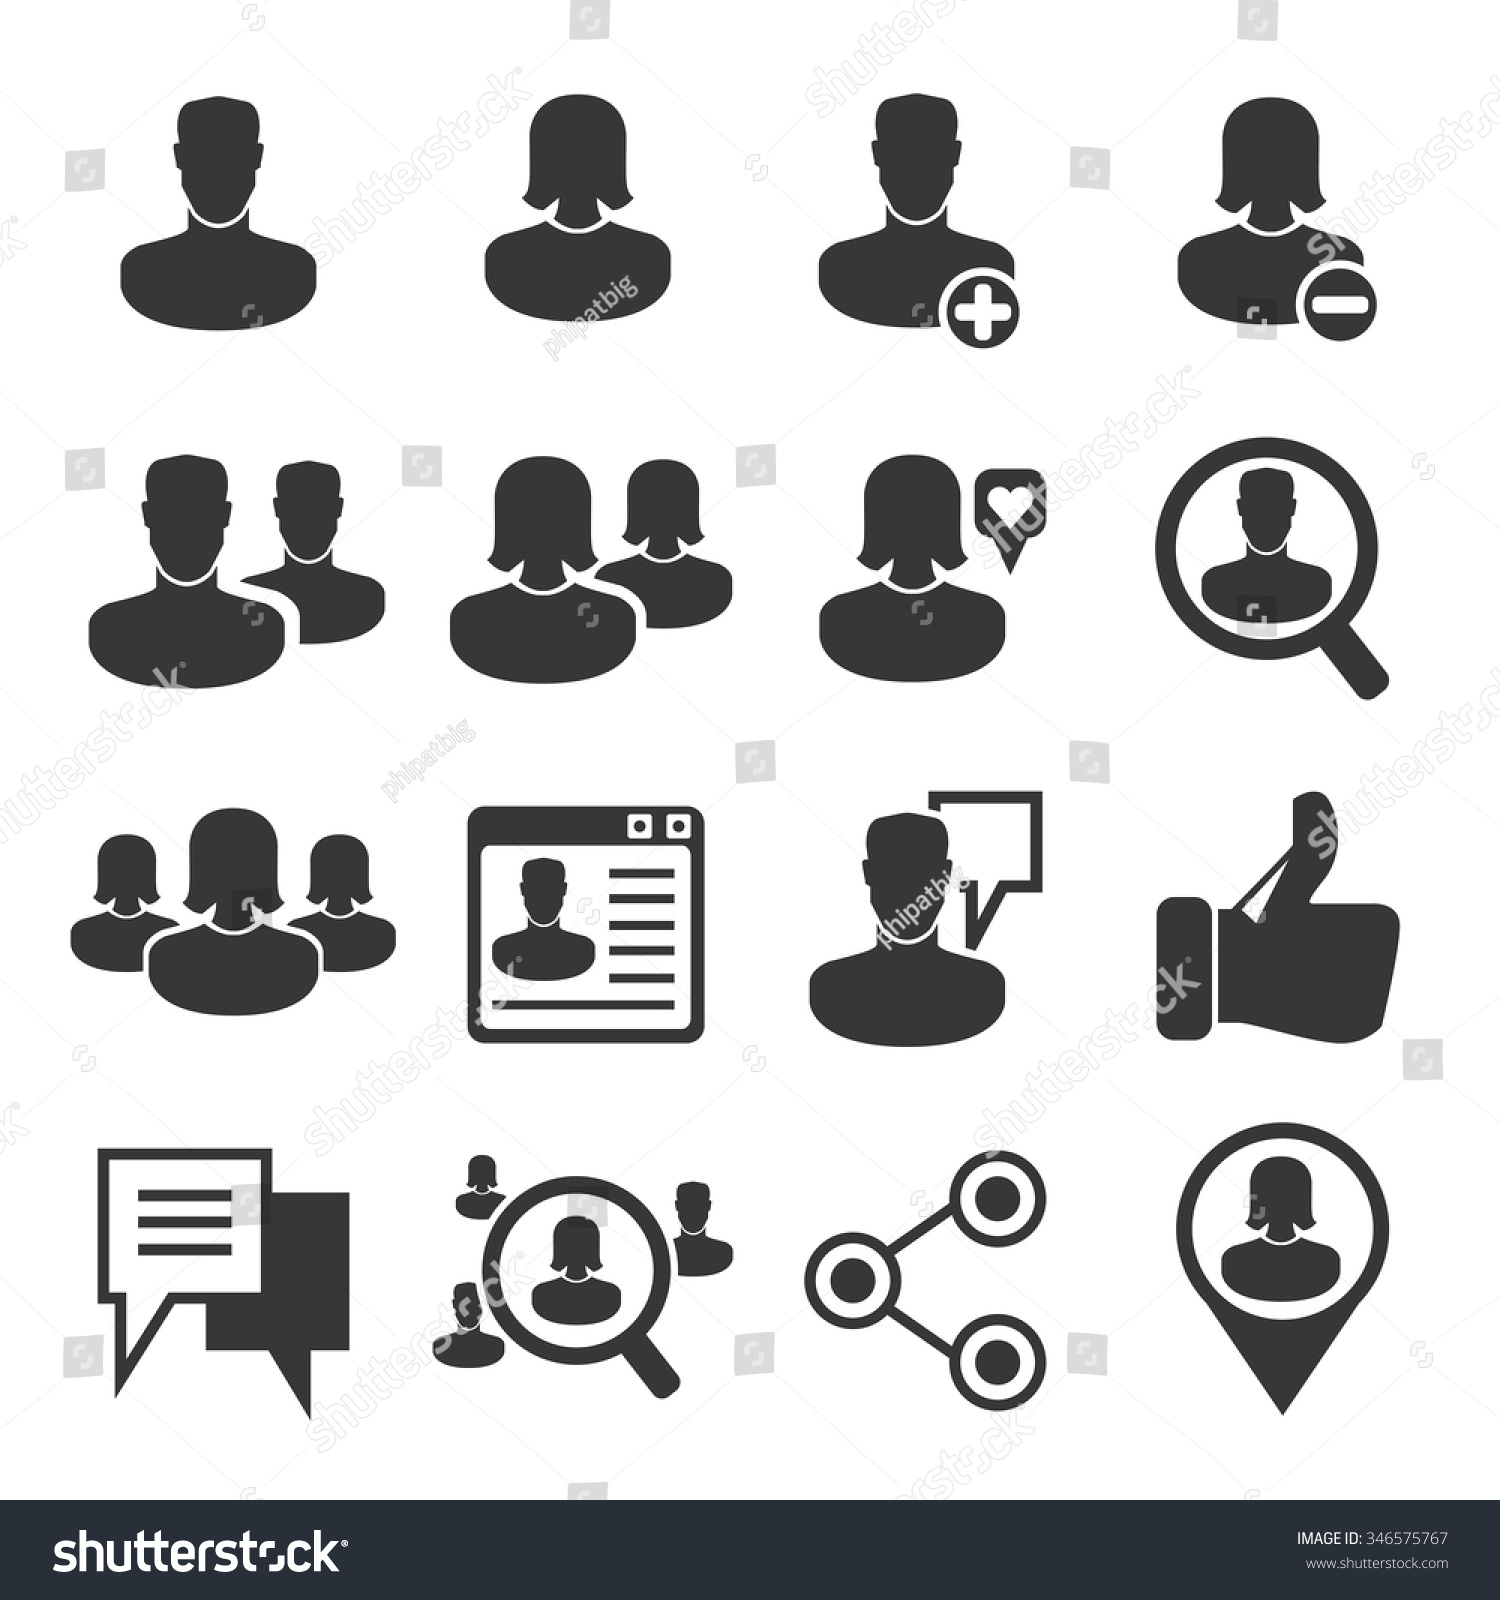 Social Media People Icons Stock Vector 346575767 ...